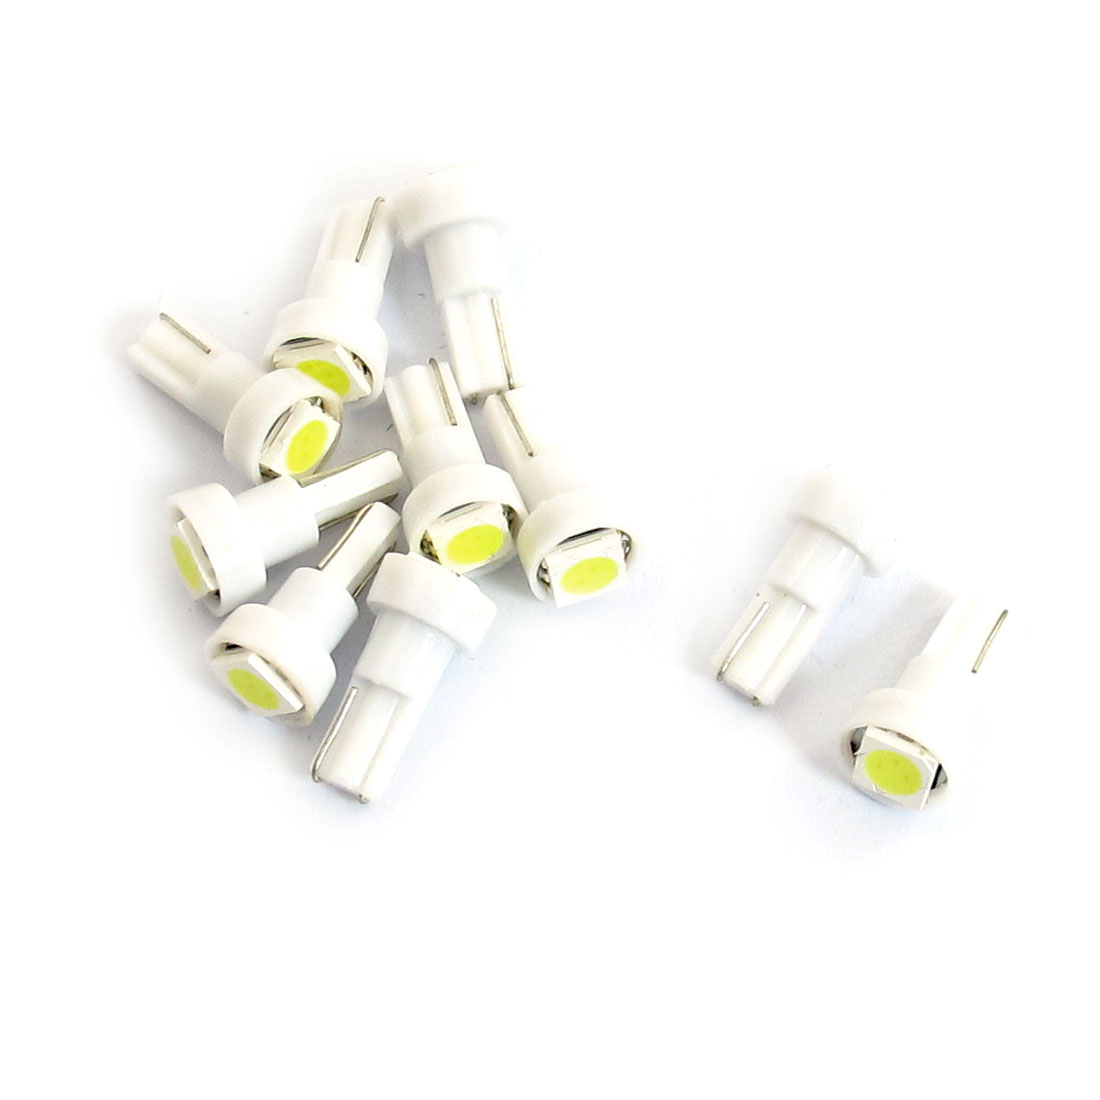 10 Pcs Round Head T5 Bayonet 1 5050 SMD LED Car Dashboard Instrument Panel Light